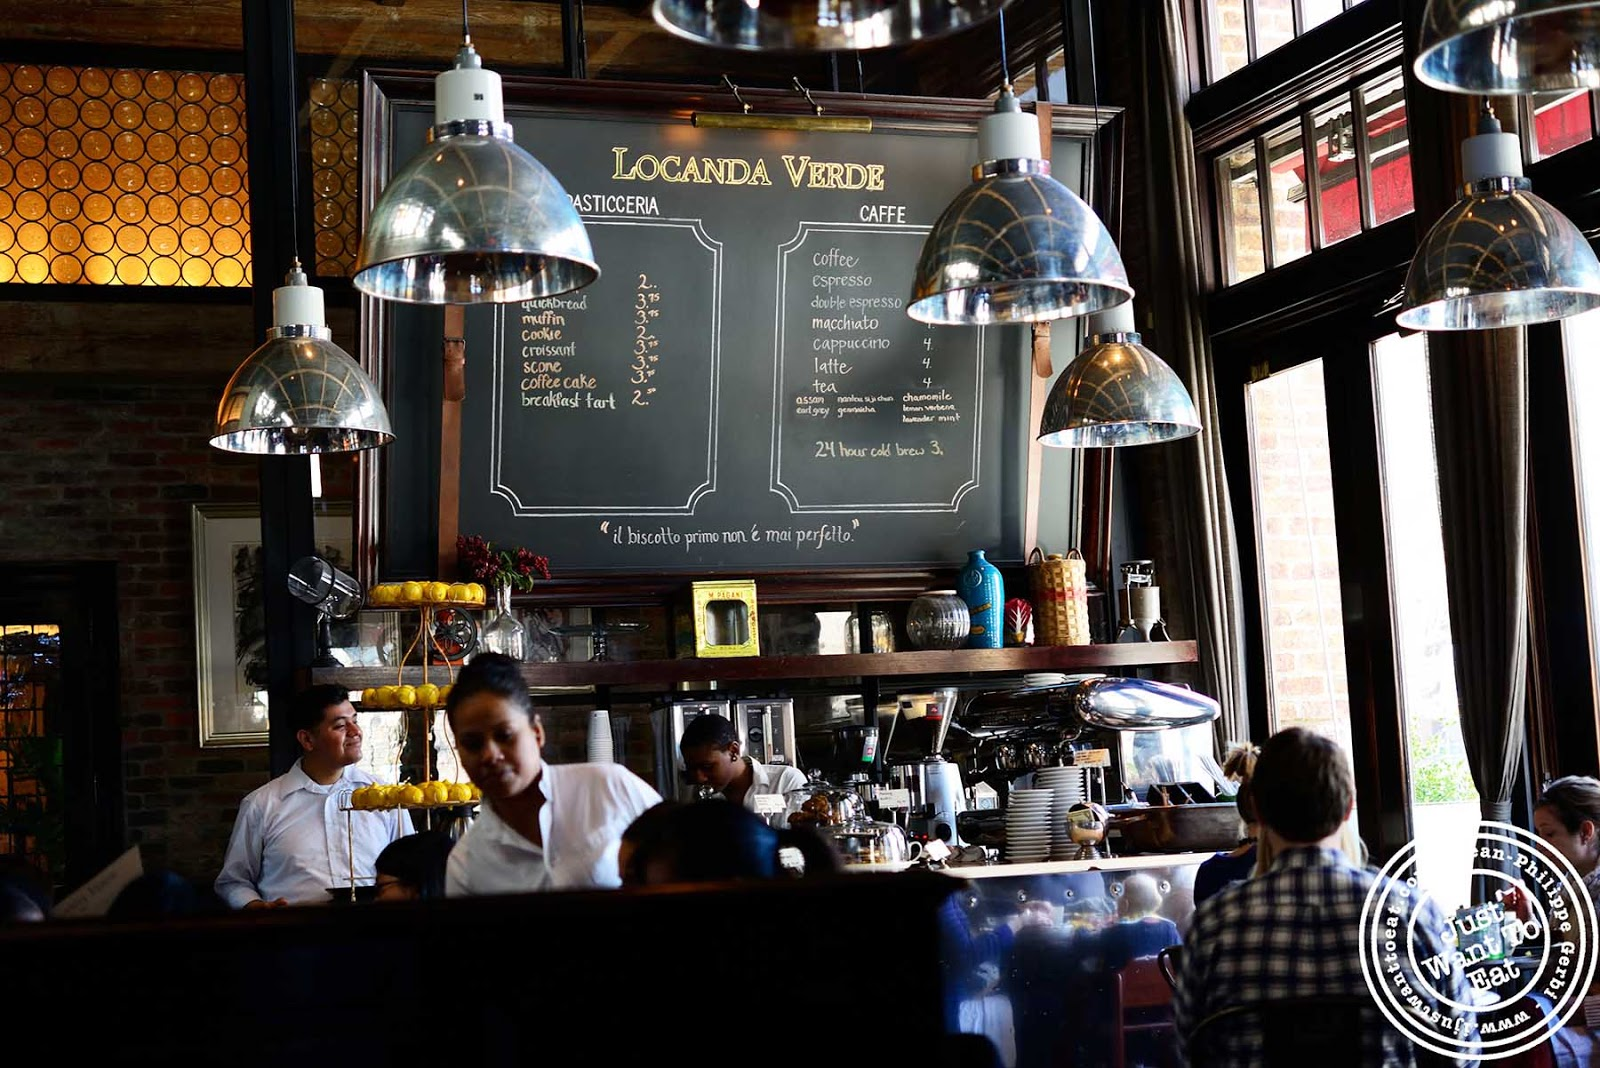 Brunch at locanda verde in tribeca nyc new york